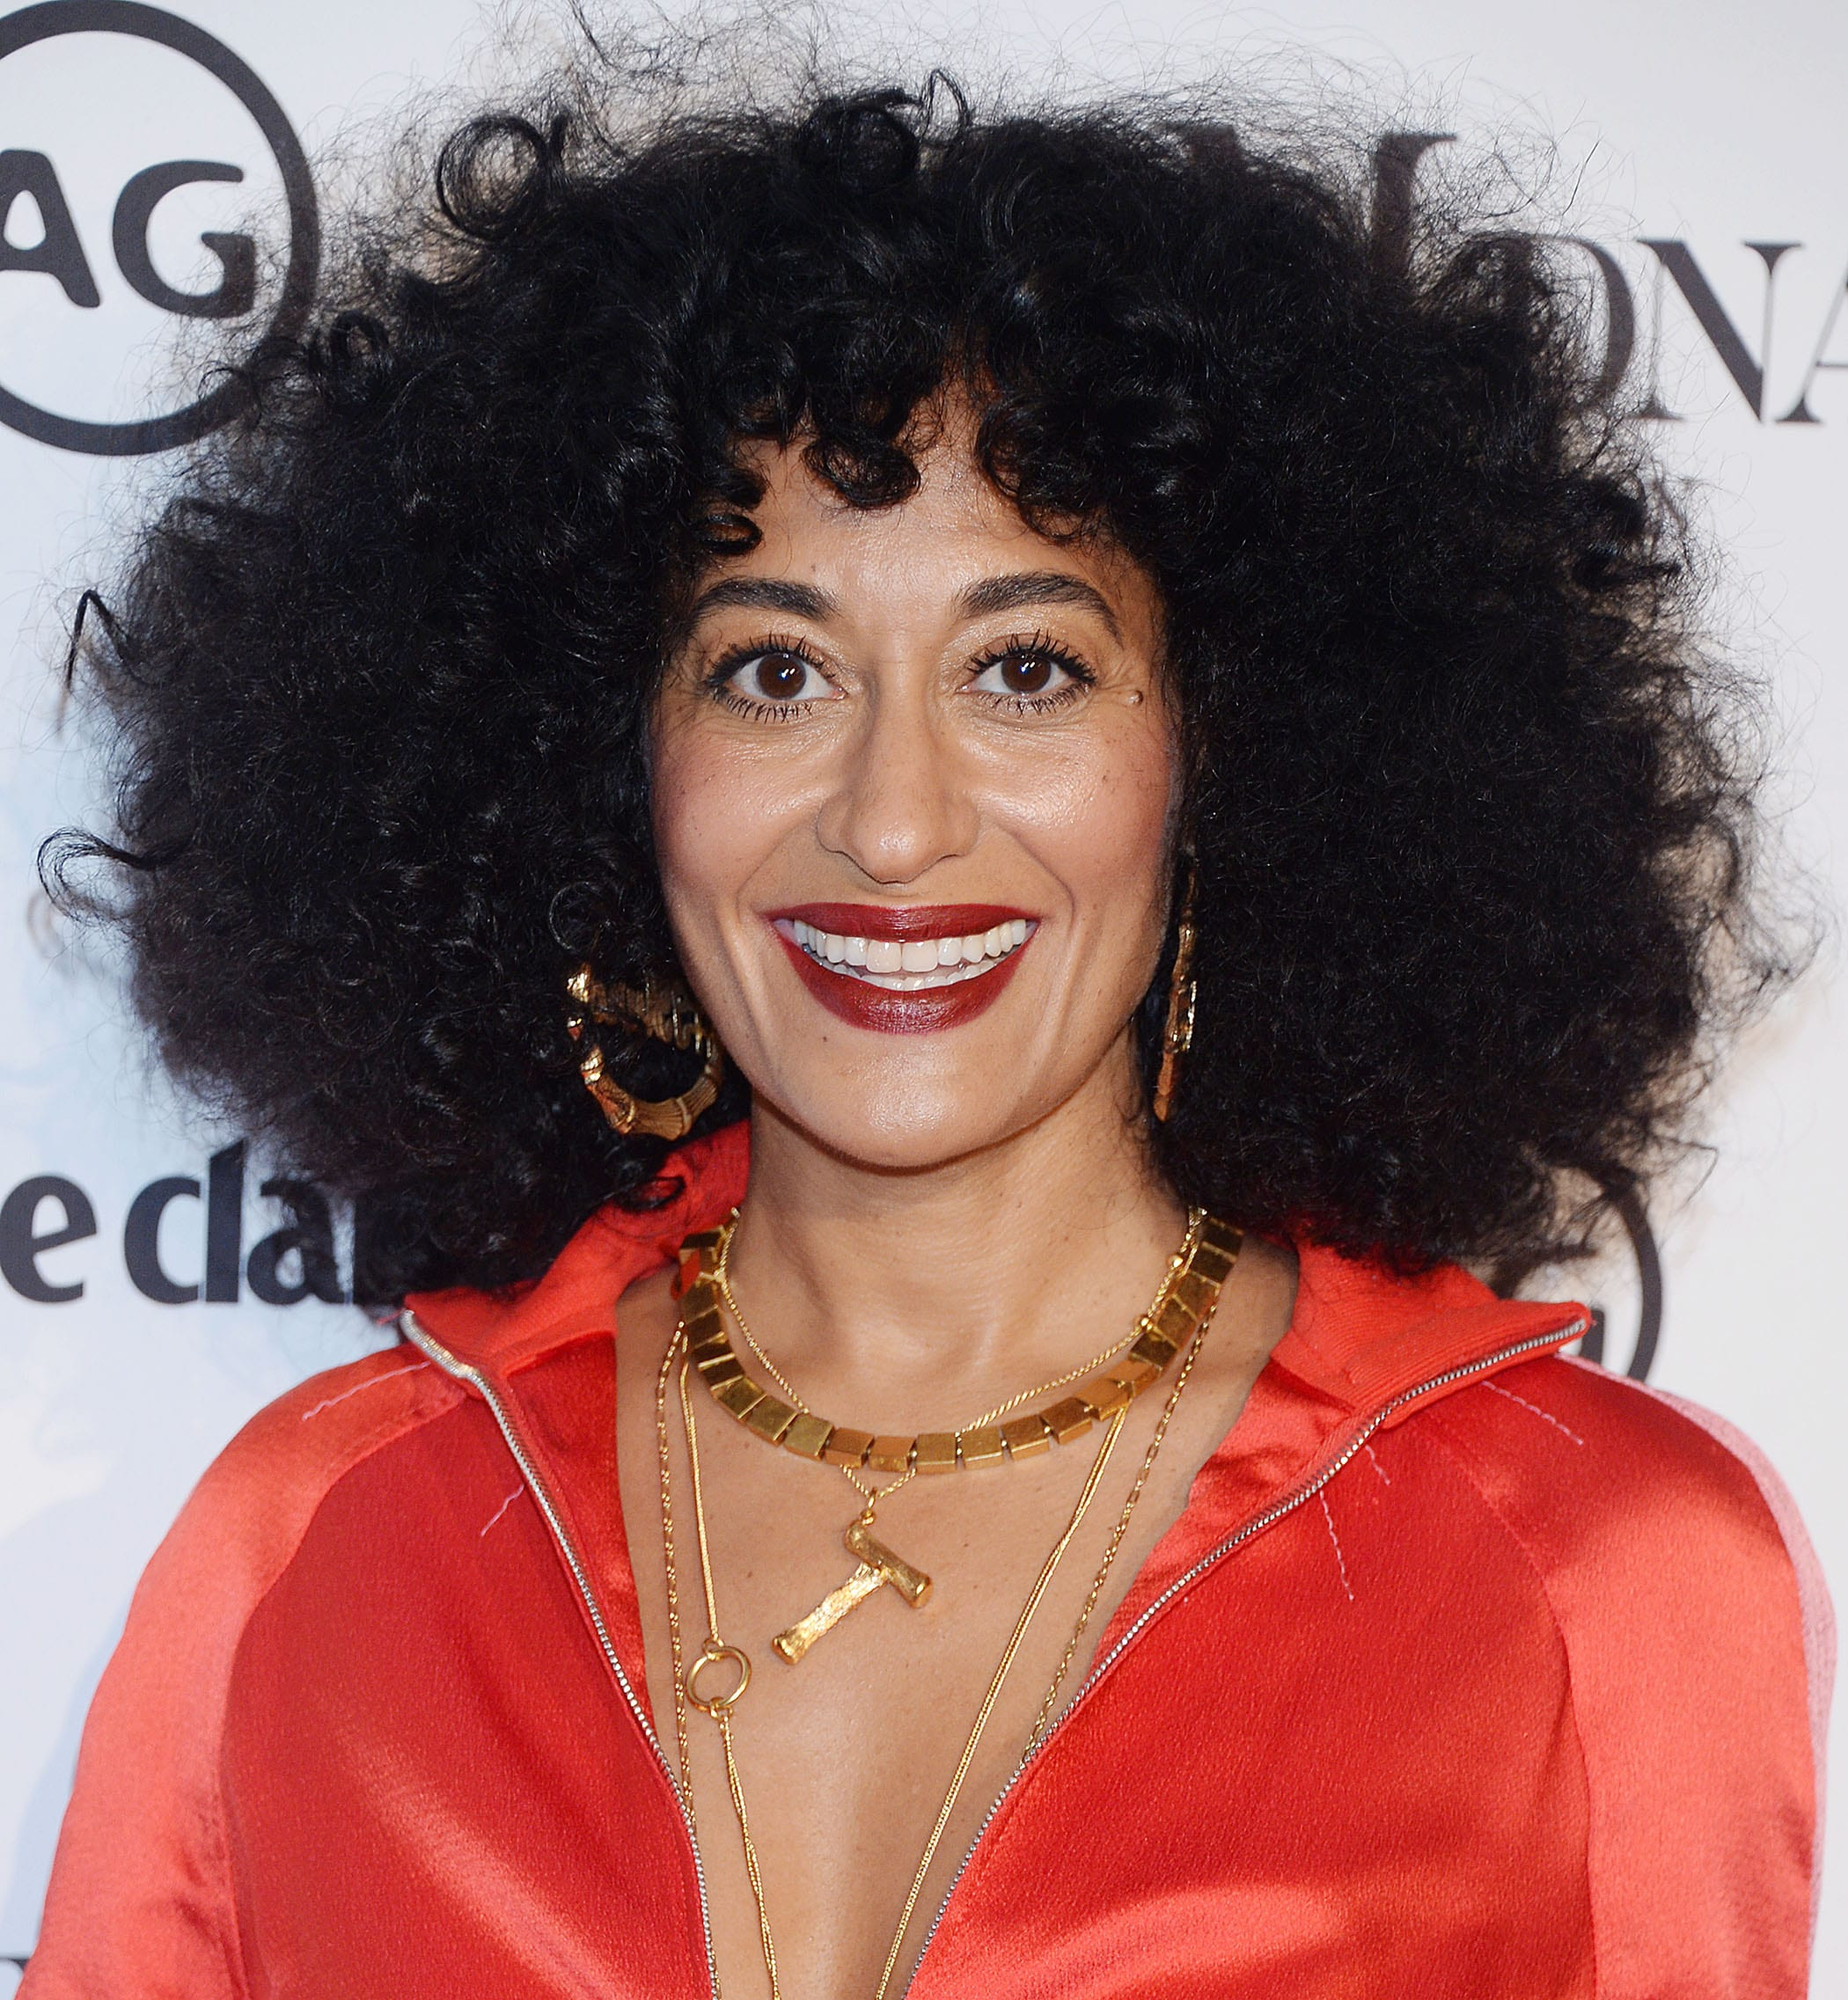 Curly hair hairstyles: Tracee Ellis Ross with dark brown shoulder length naturally curly hair with short micro fringe wearing red satin dress on red carpet